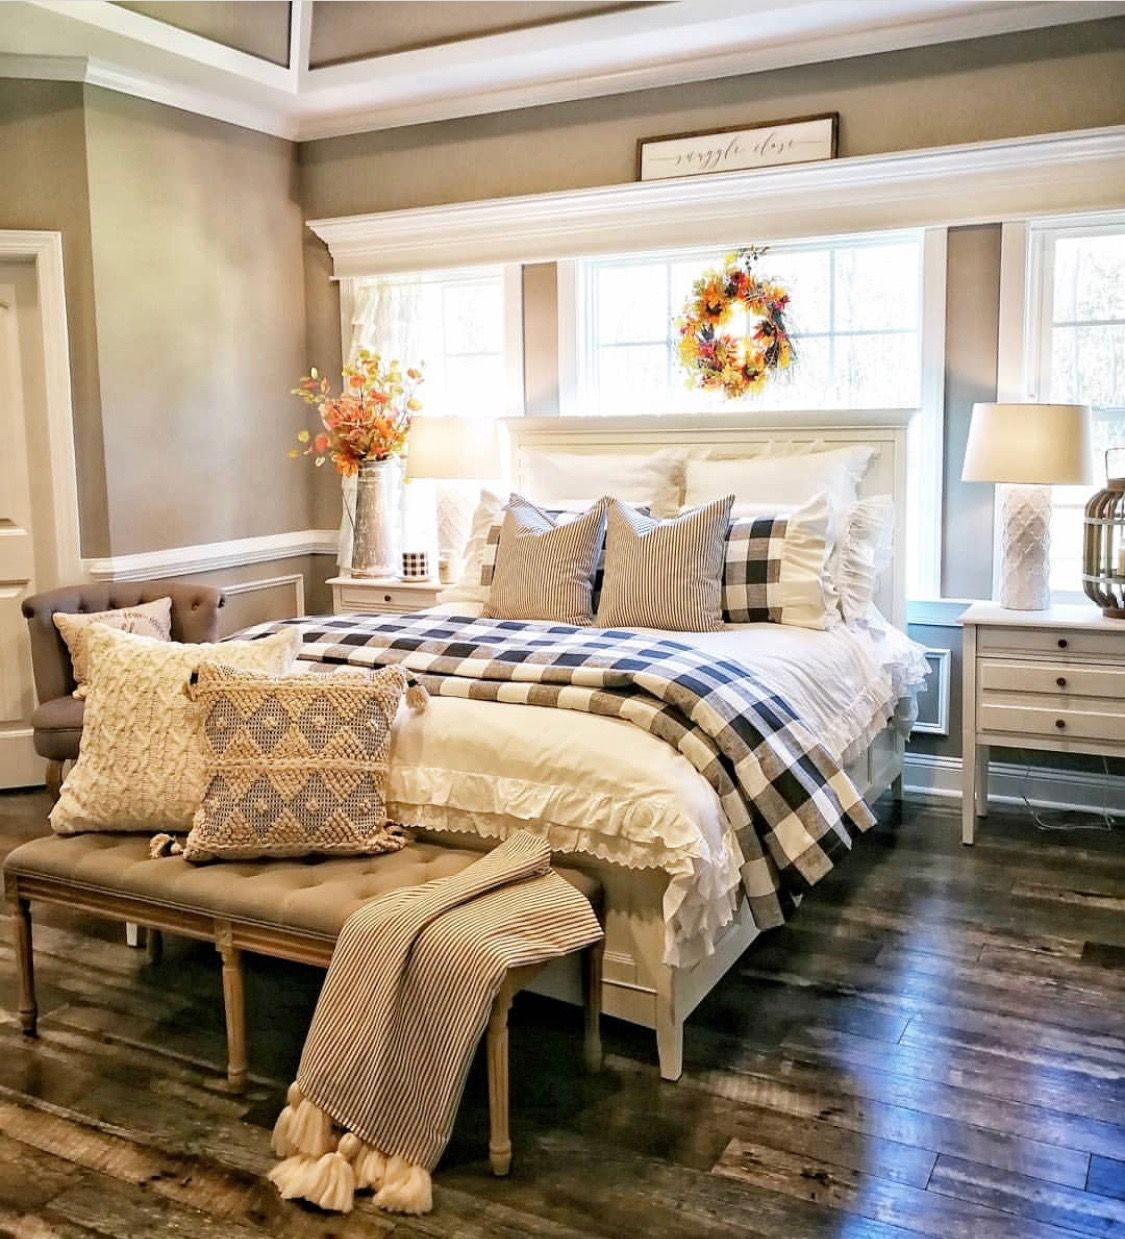 Home decor bedroom cozy dream master suite also best cabins images in tiny house plans diy ideas for rh pinterest